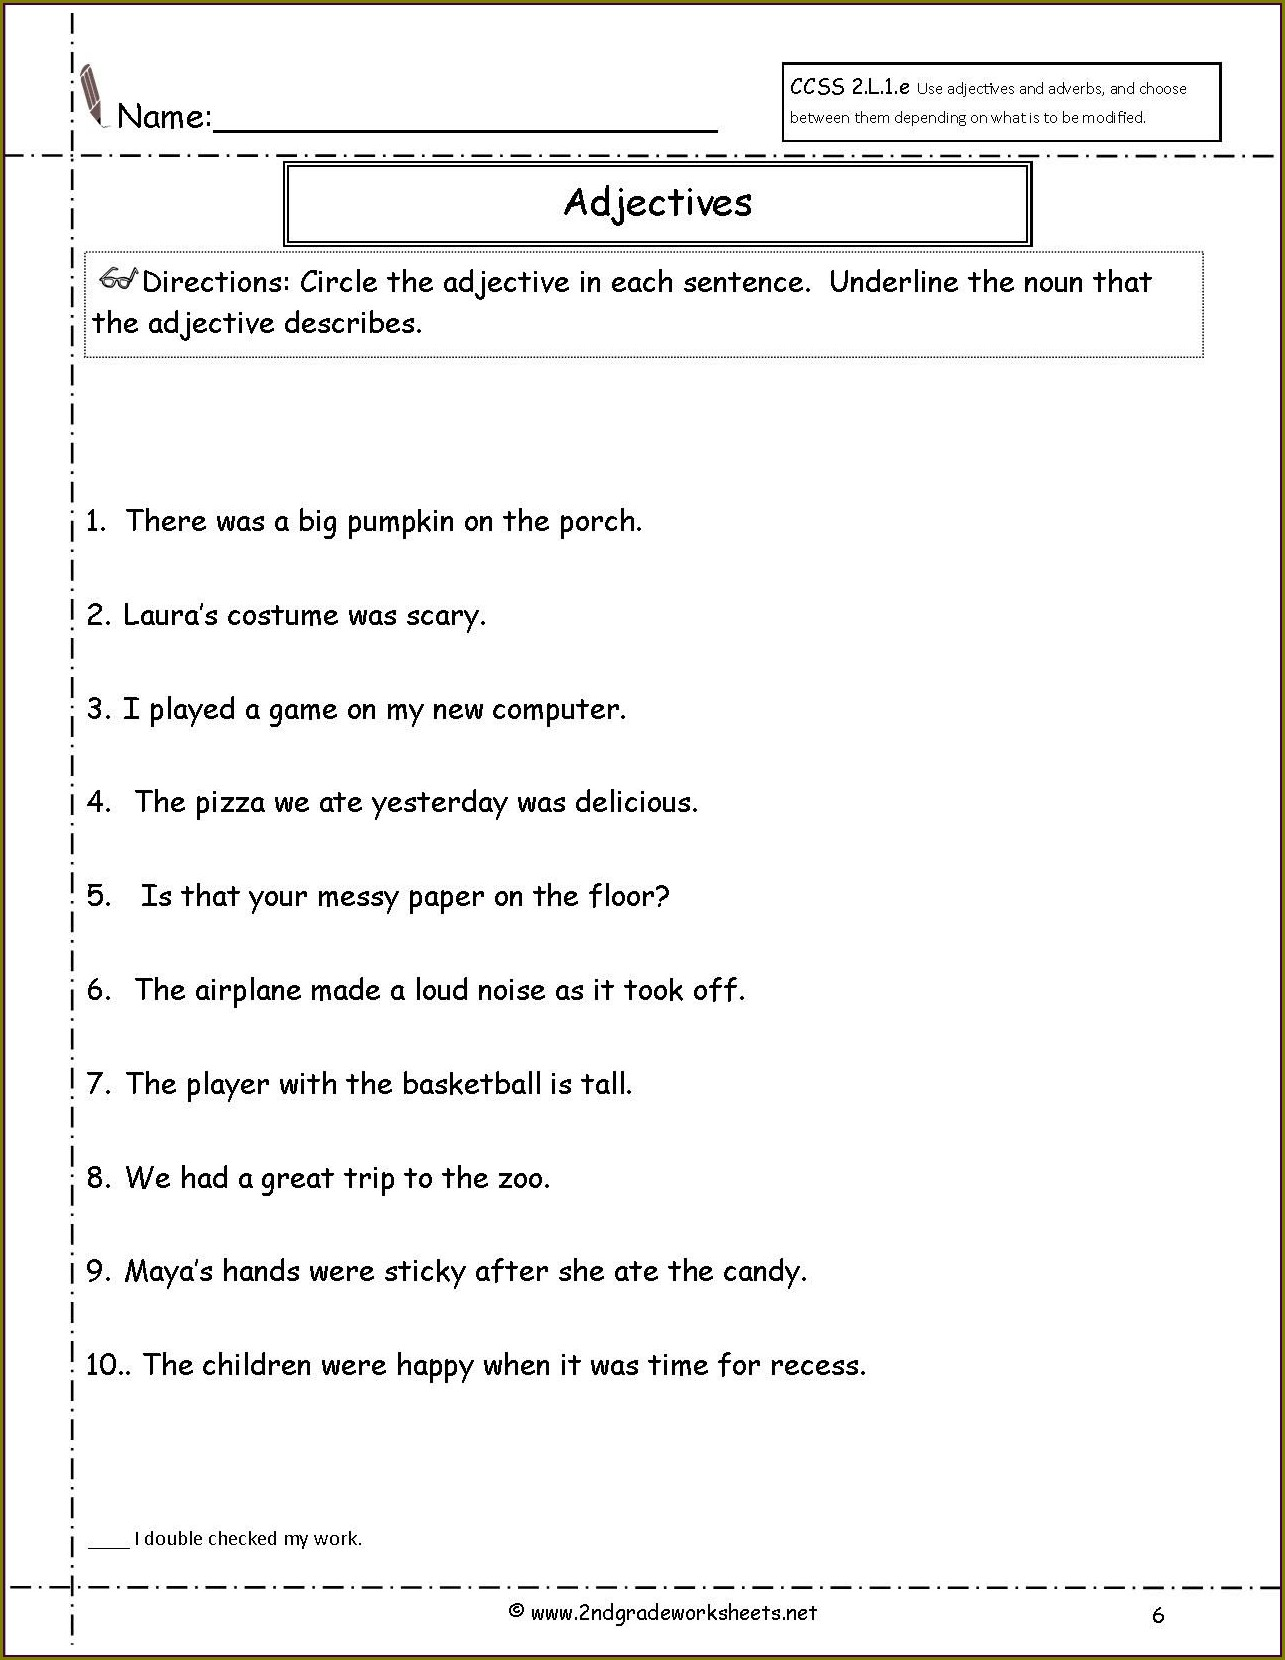 Free Adjectives Worksheets For Second Grade